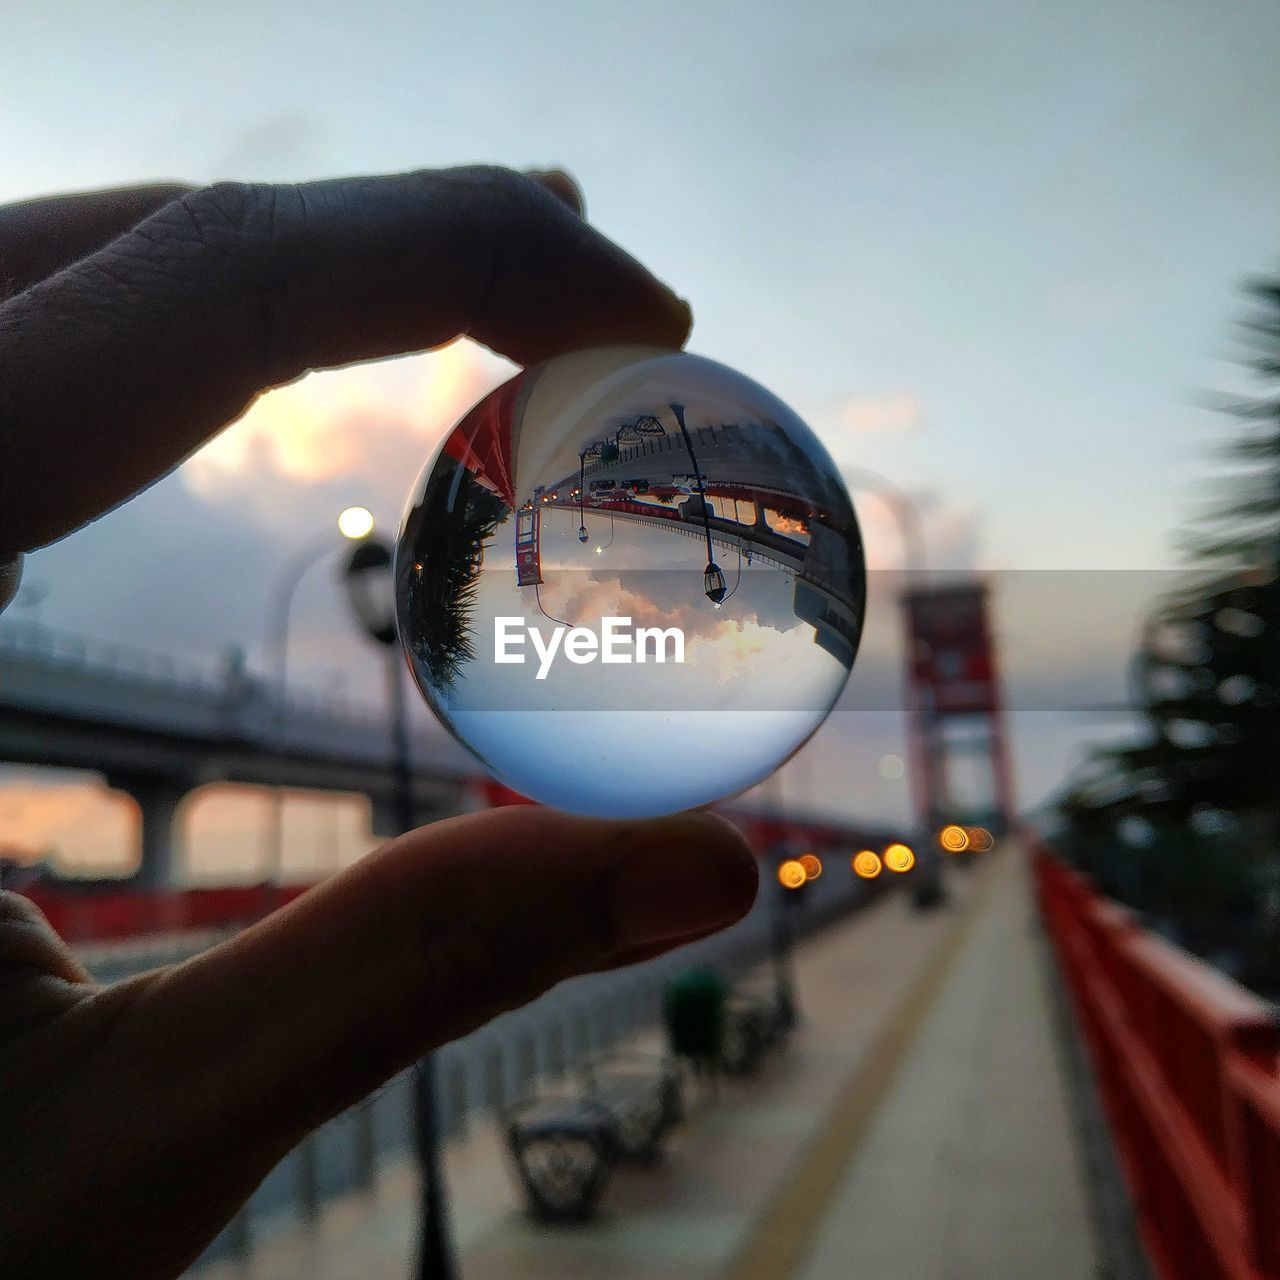 human hand, hand, human body part, sphere, holding, building exterior, city, one person, real people, personal perspective, architecture, crystal ball, close-up, focus on foreground, street, built structure, day, finger, glass - material, reflection, body part, outdoors